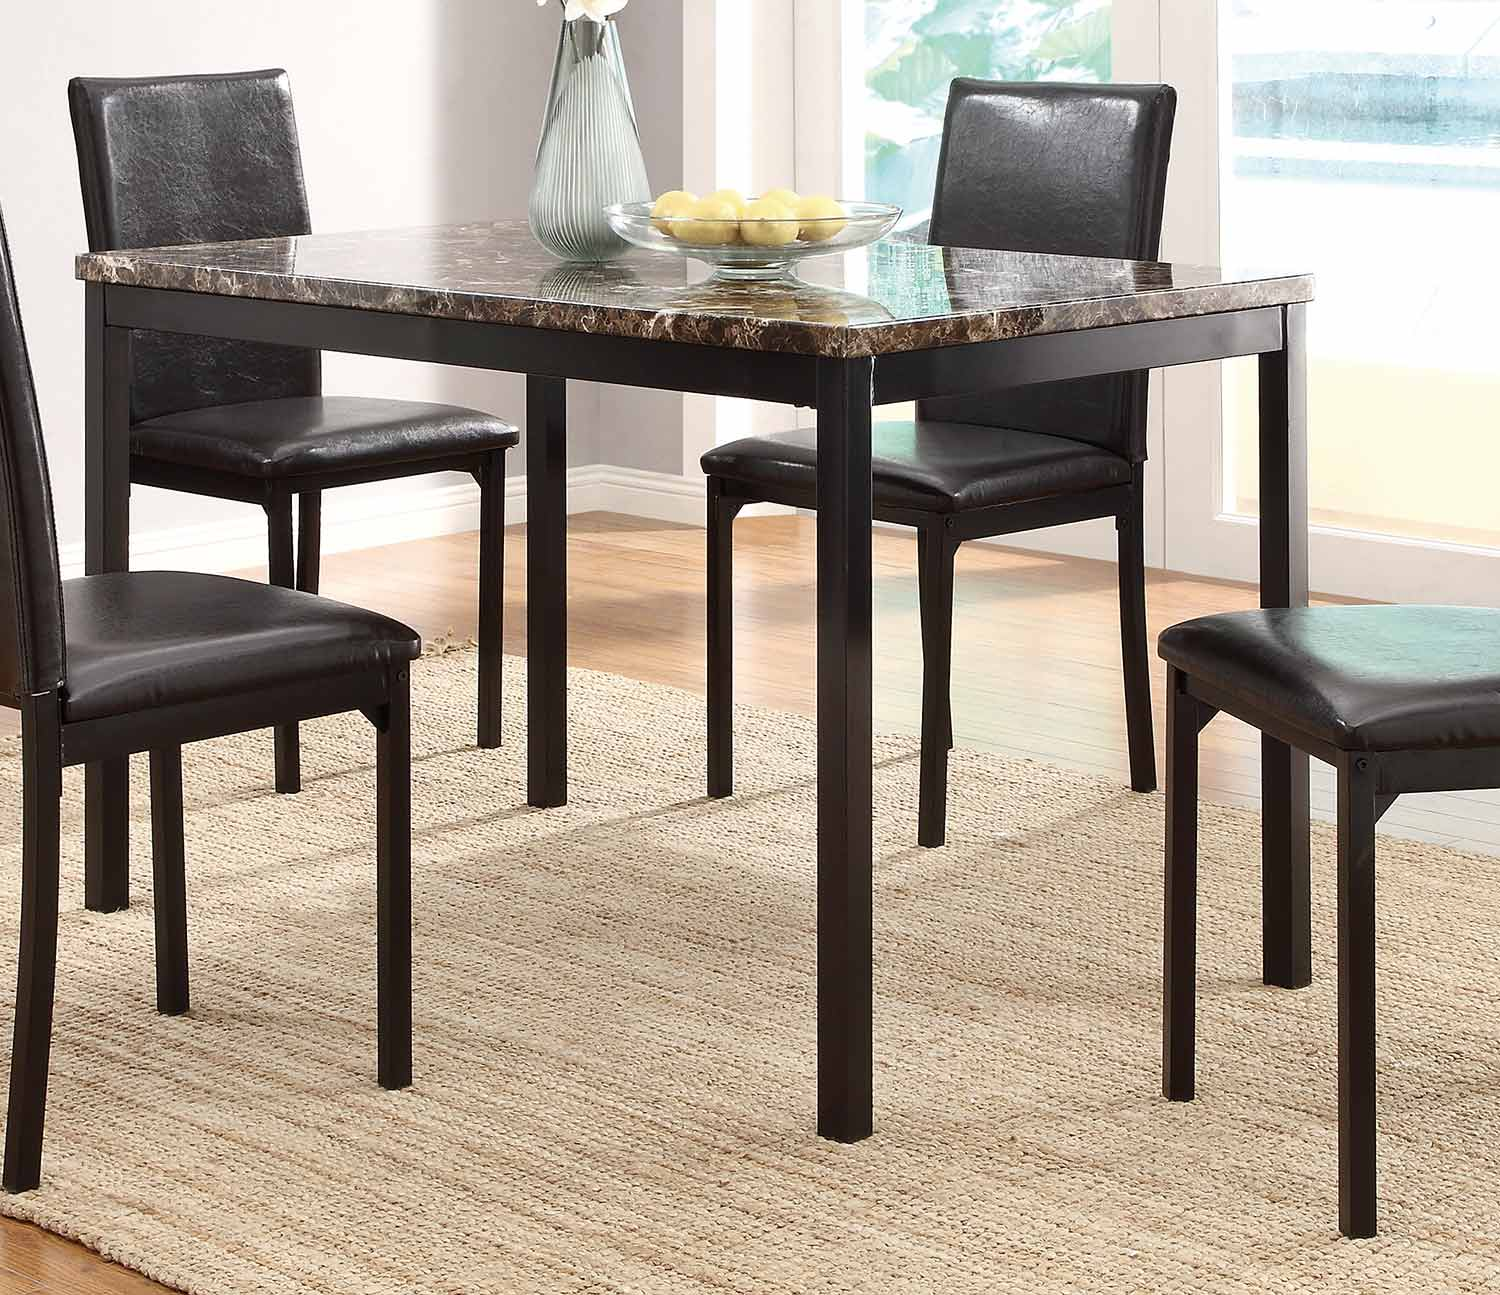 Counter Height Metal Table : Homelegance Tempe Counter Height Dining Set - Black Metal 2601-Counter ...